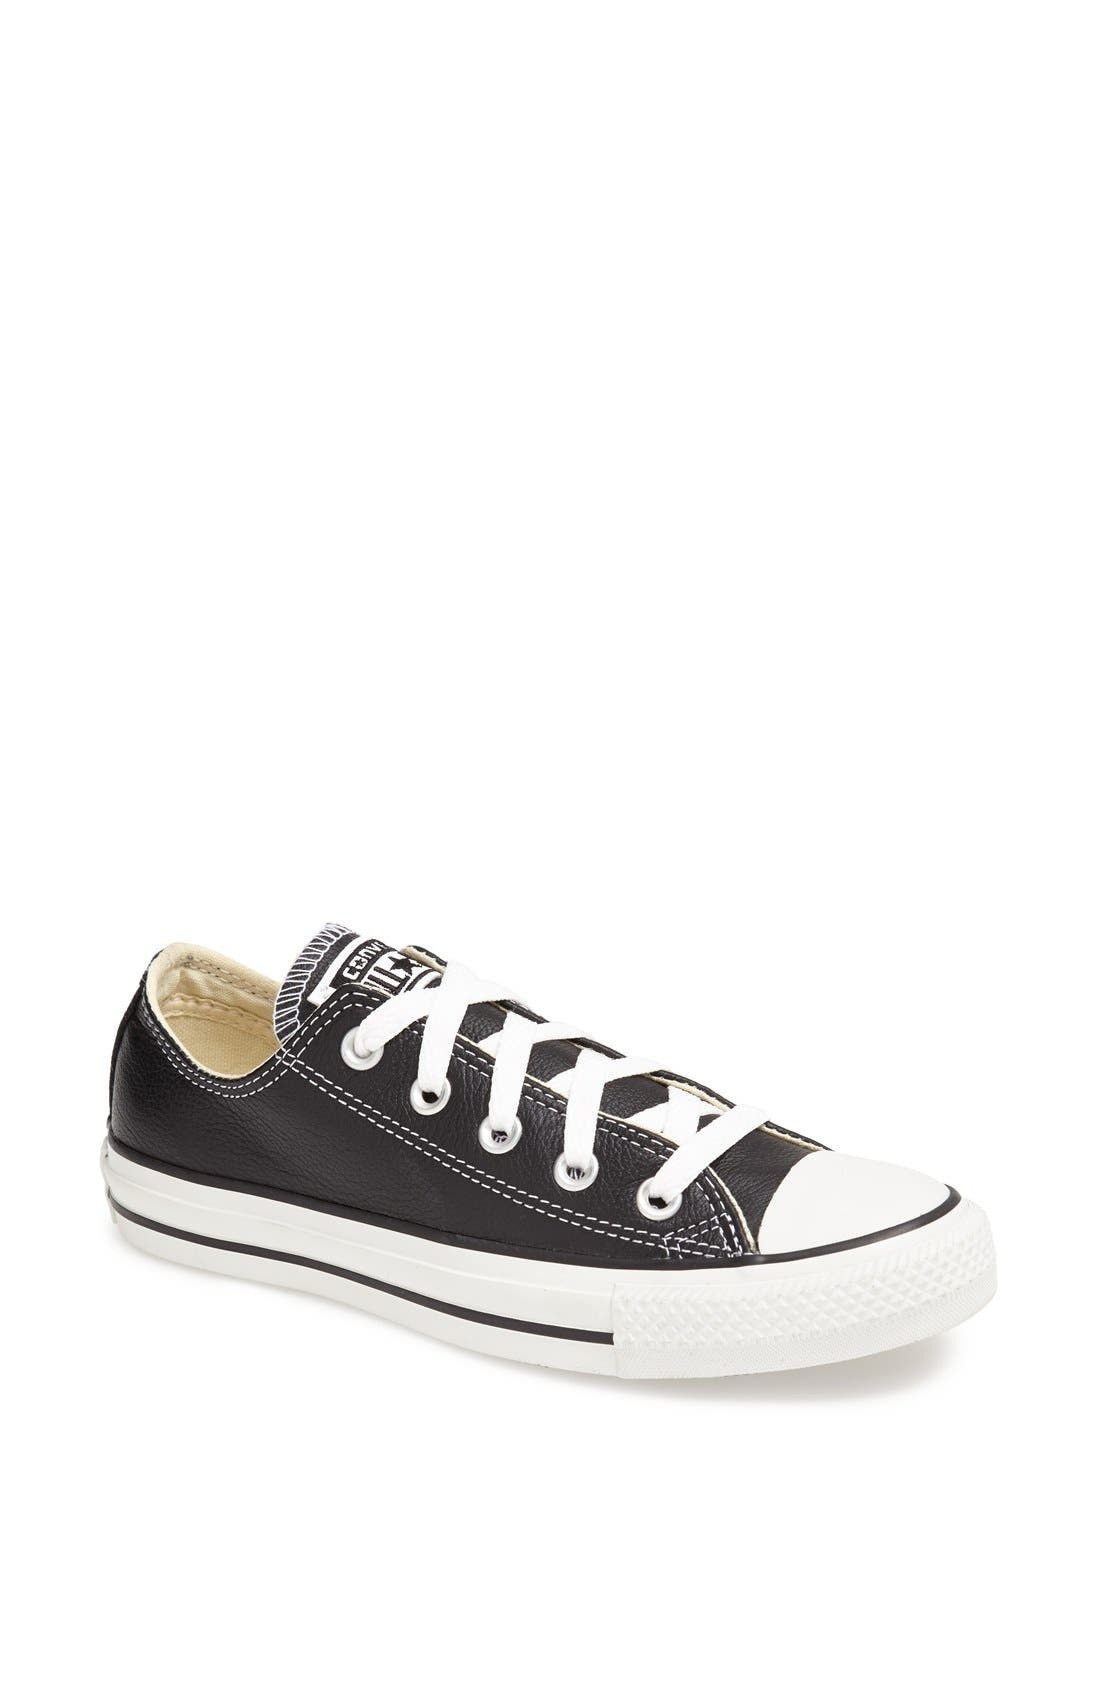 Alternate Image 1 Selected - Converse Chuck Taylor® All Star® Leather Sneaker (Women)